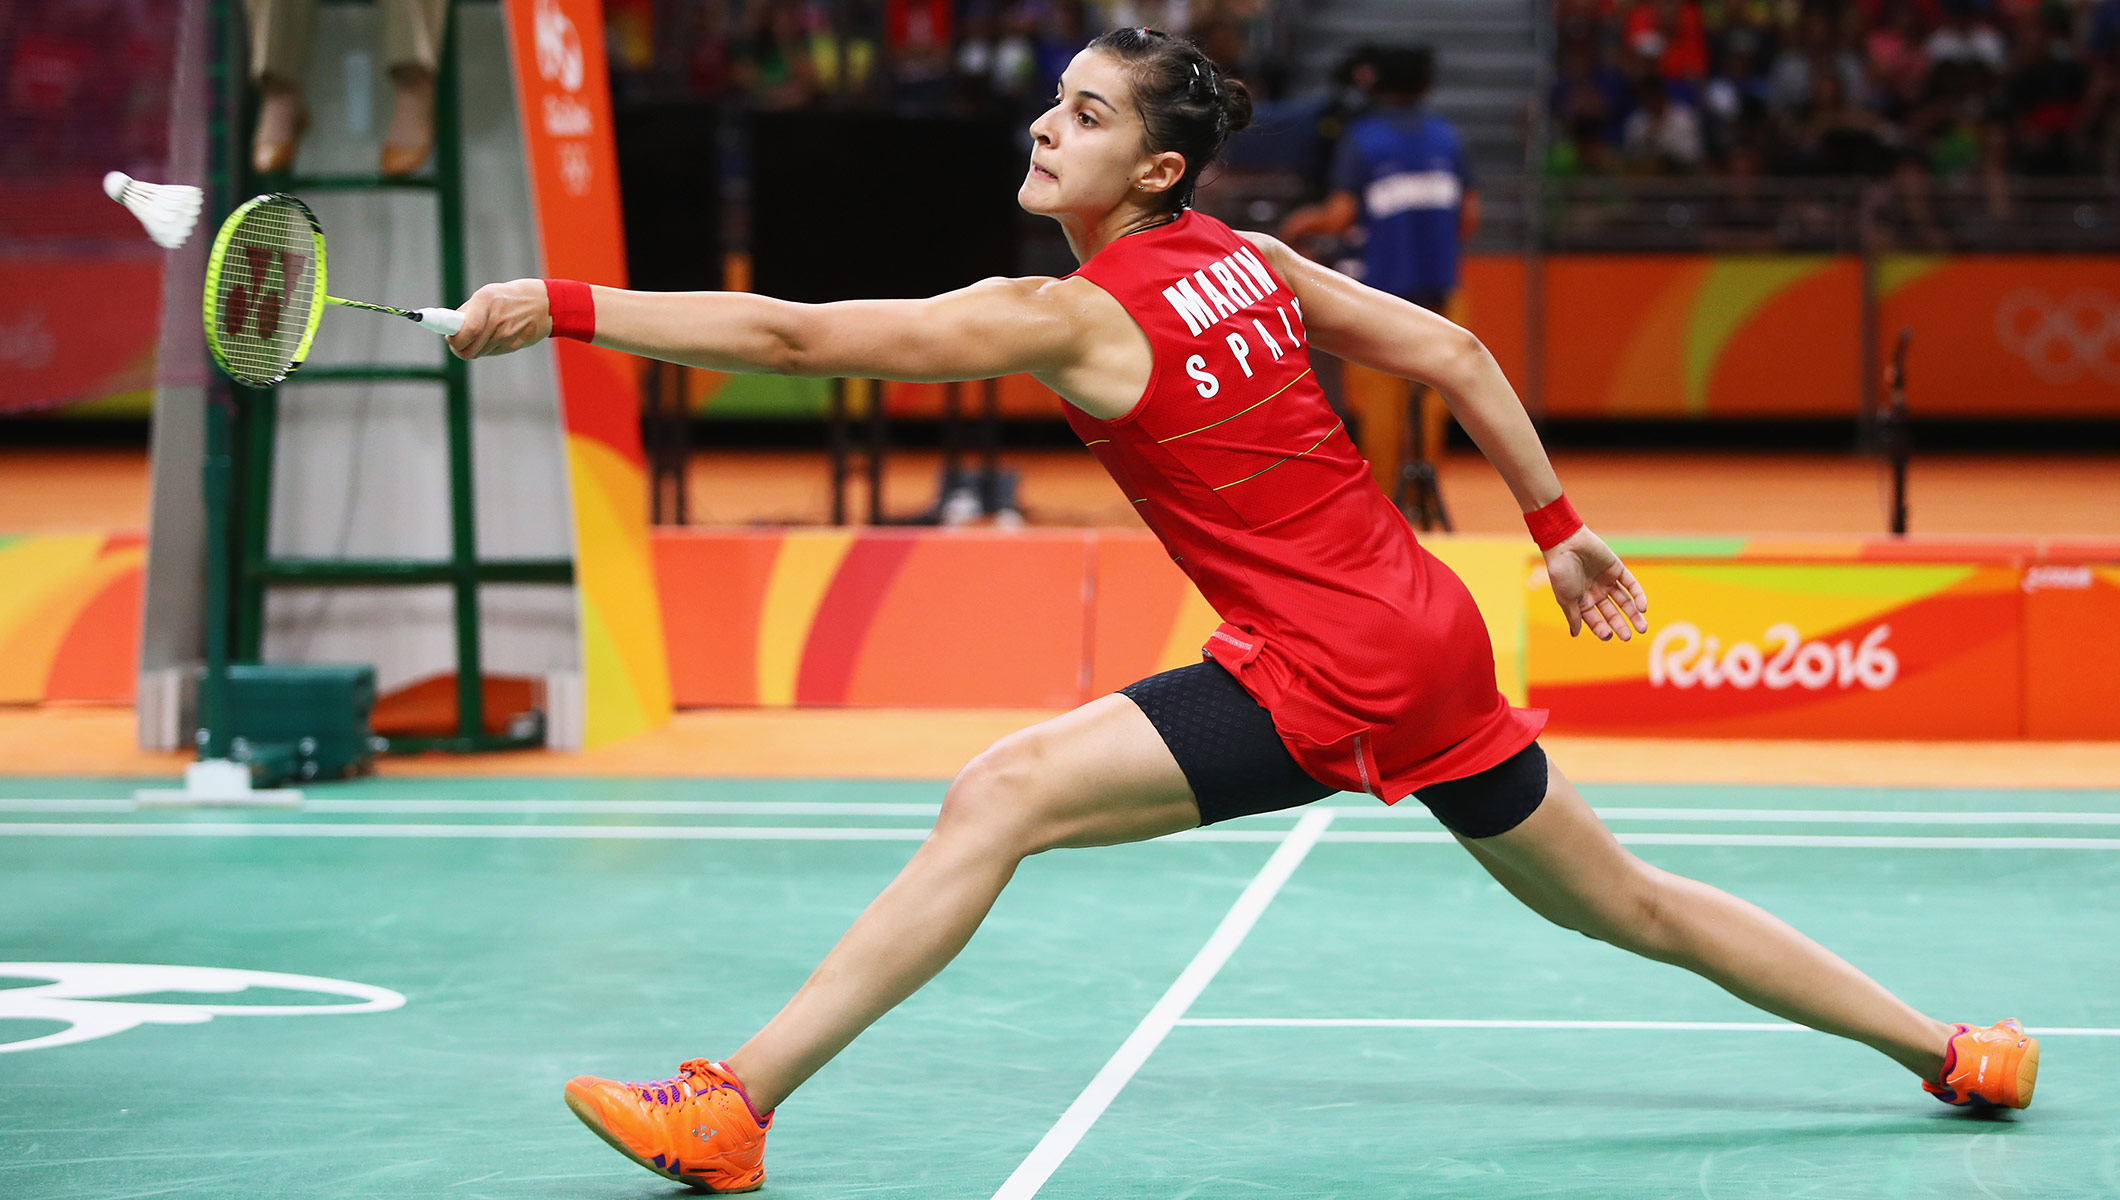 Carolina Mar­n The YOG athlete who became Olympic badminton